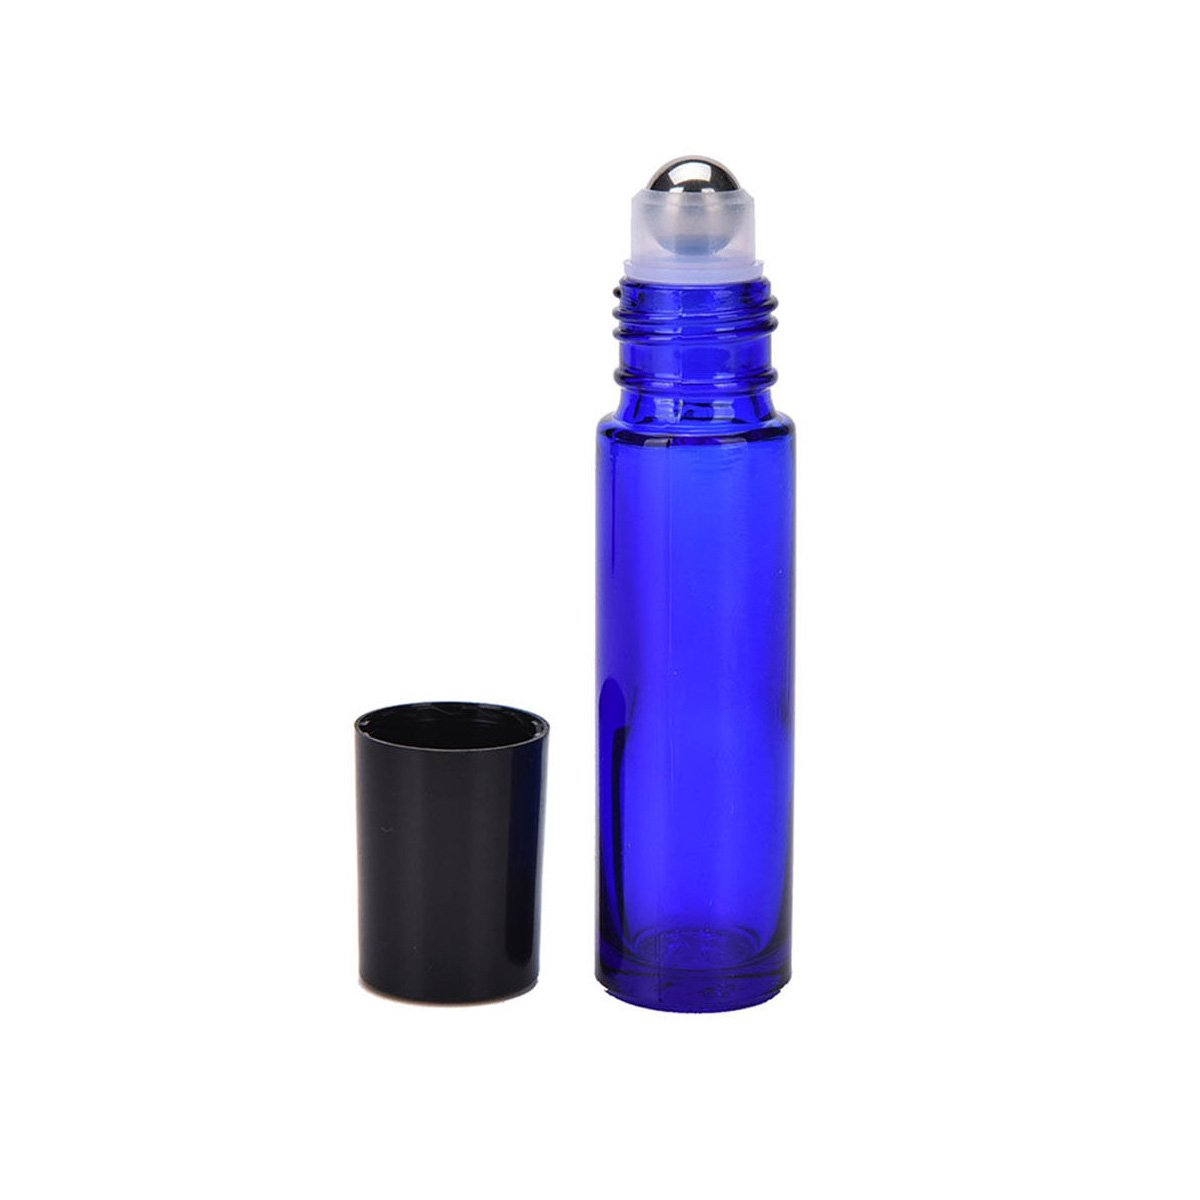 YAMU 10ML Cobalt Blue Glass Roll-on Bottles With Stainless Steel Roller Balls 12pcs